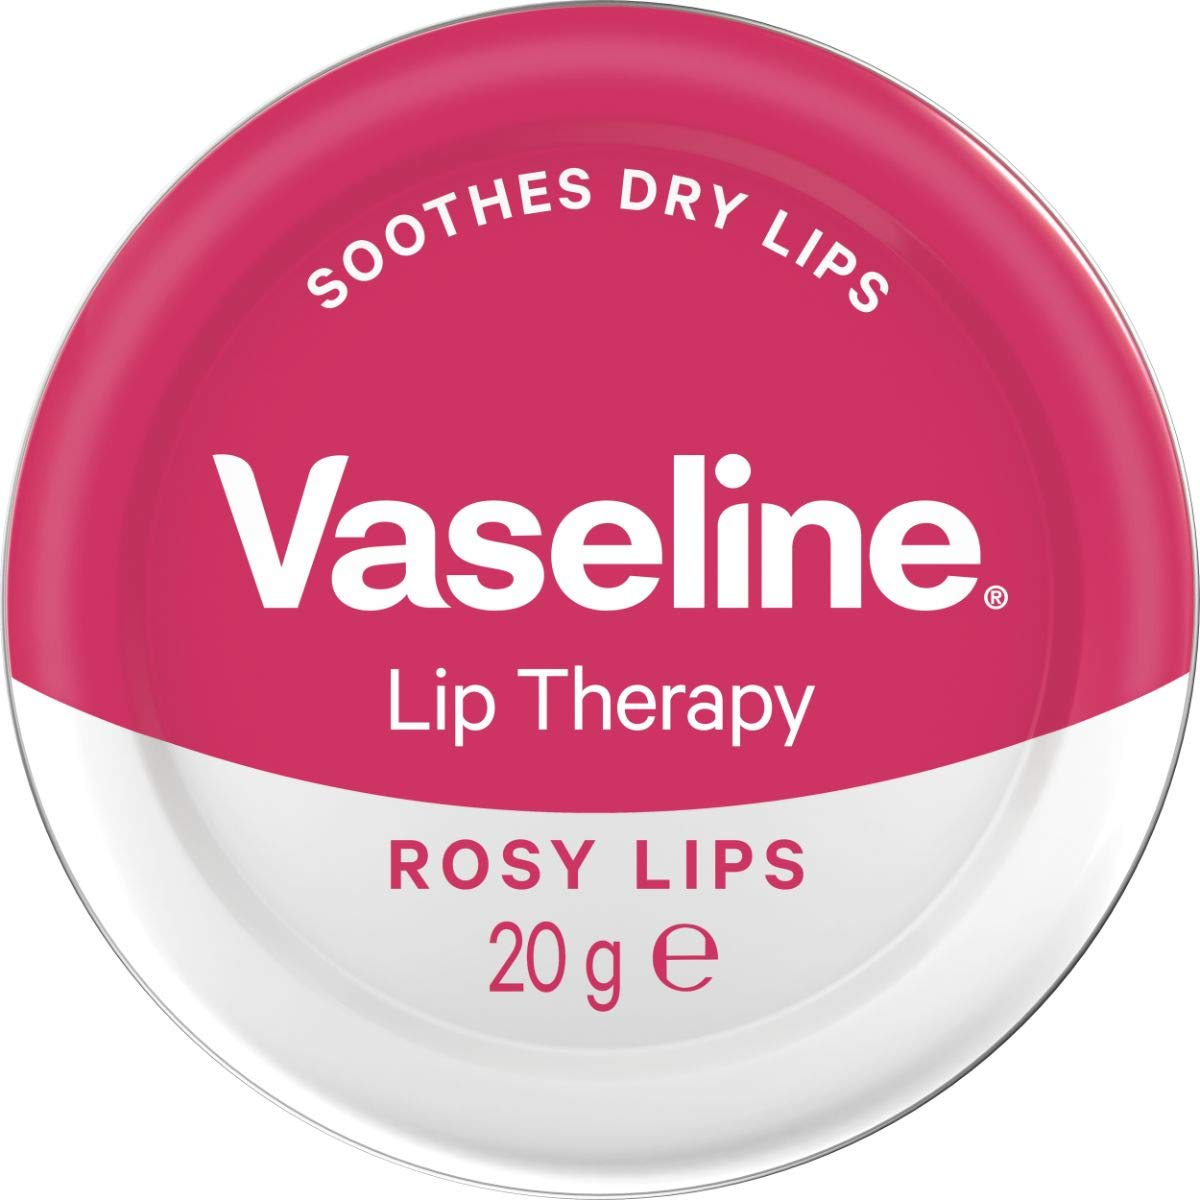 Vaseline Lip Therapy Rosy Lips Petroleum Jelly, 20 g